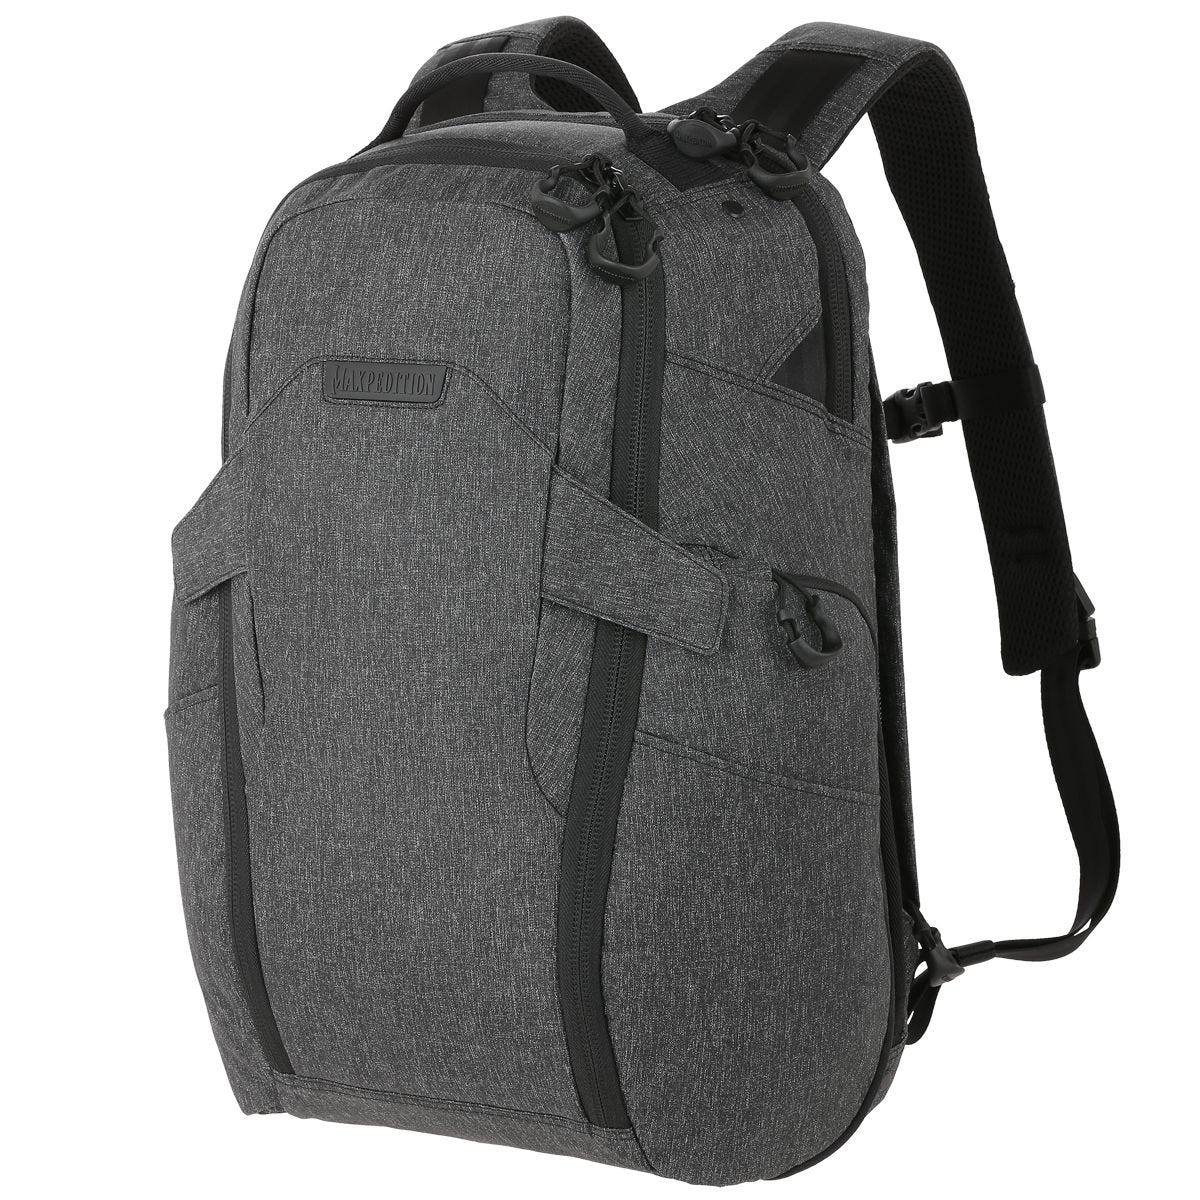 The Maxpedition Entity 27 Backpack travel product recommended by Lukas on Lifney.